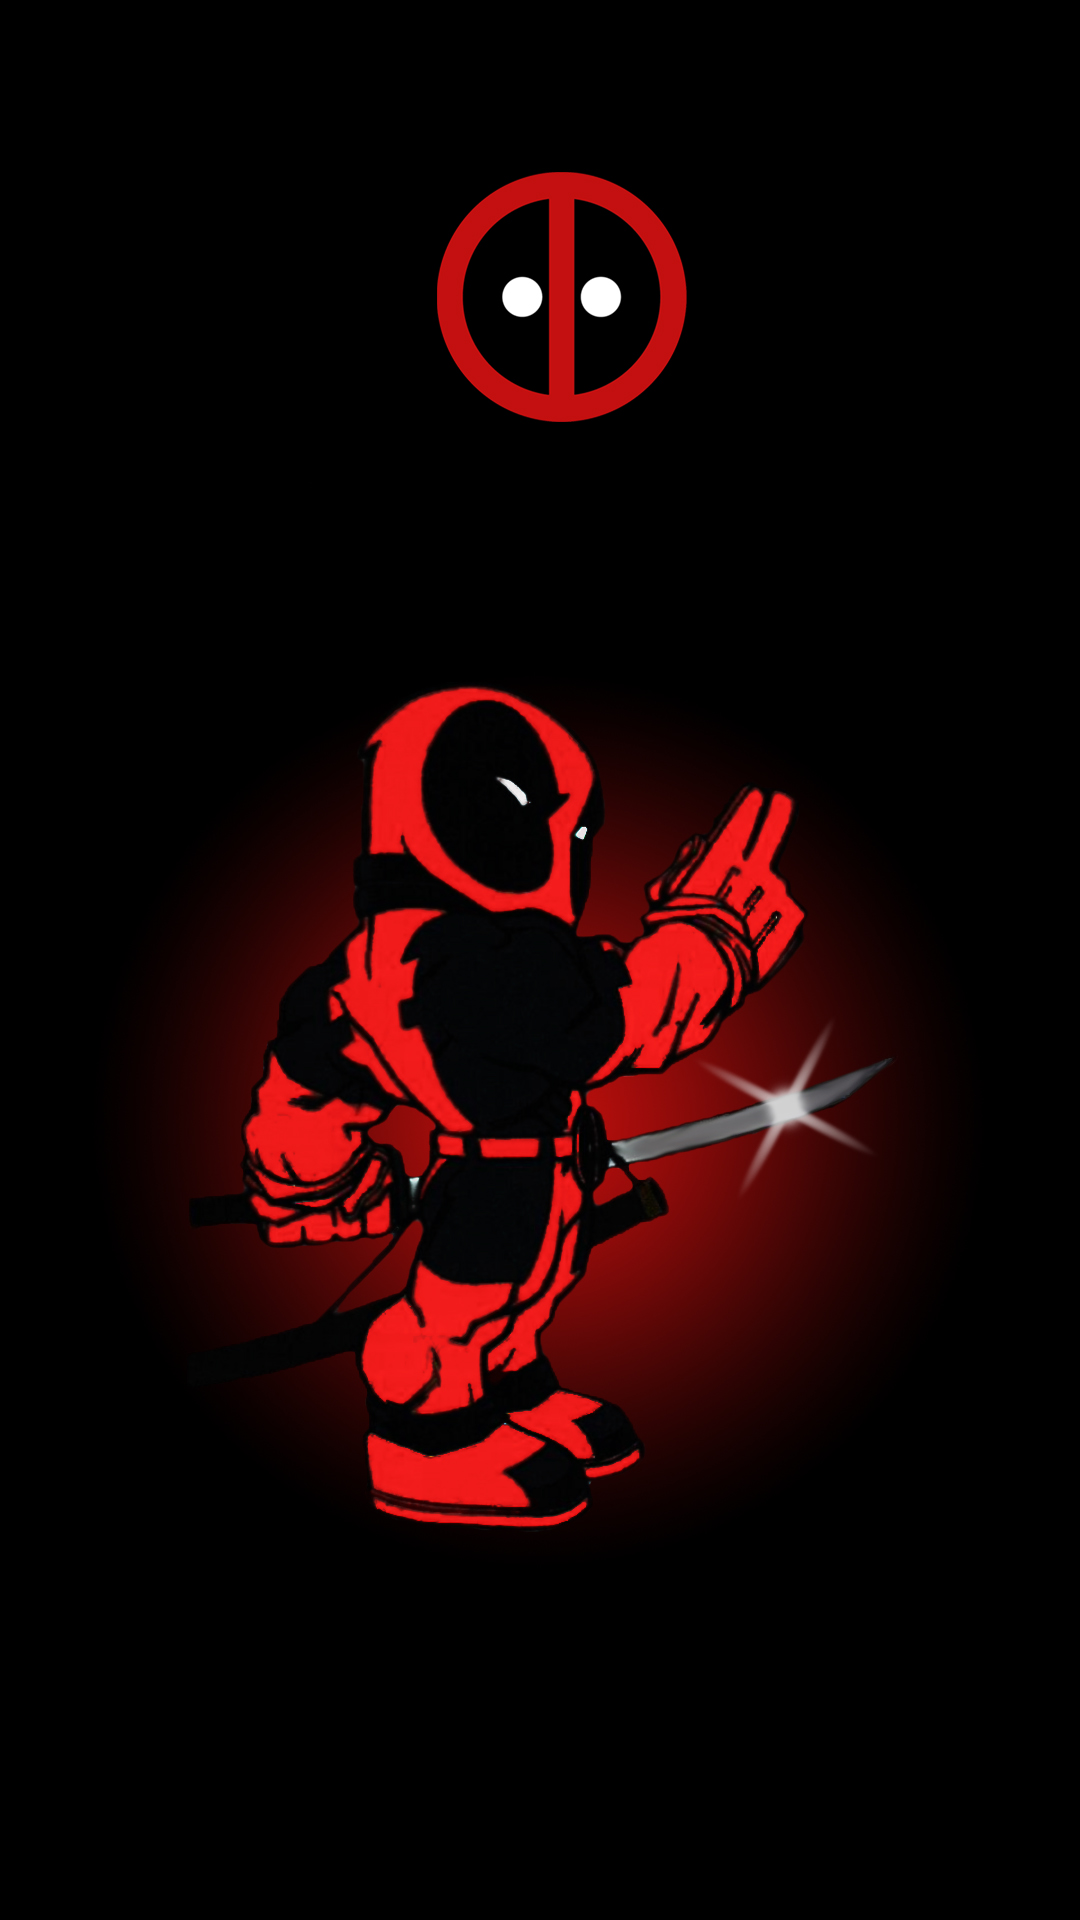 Deadpool Wallpaper Phone - WallpaperSafari